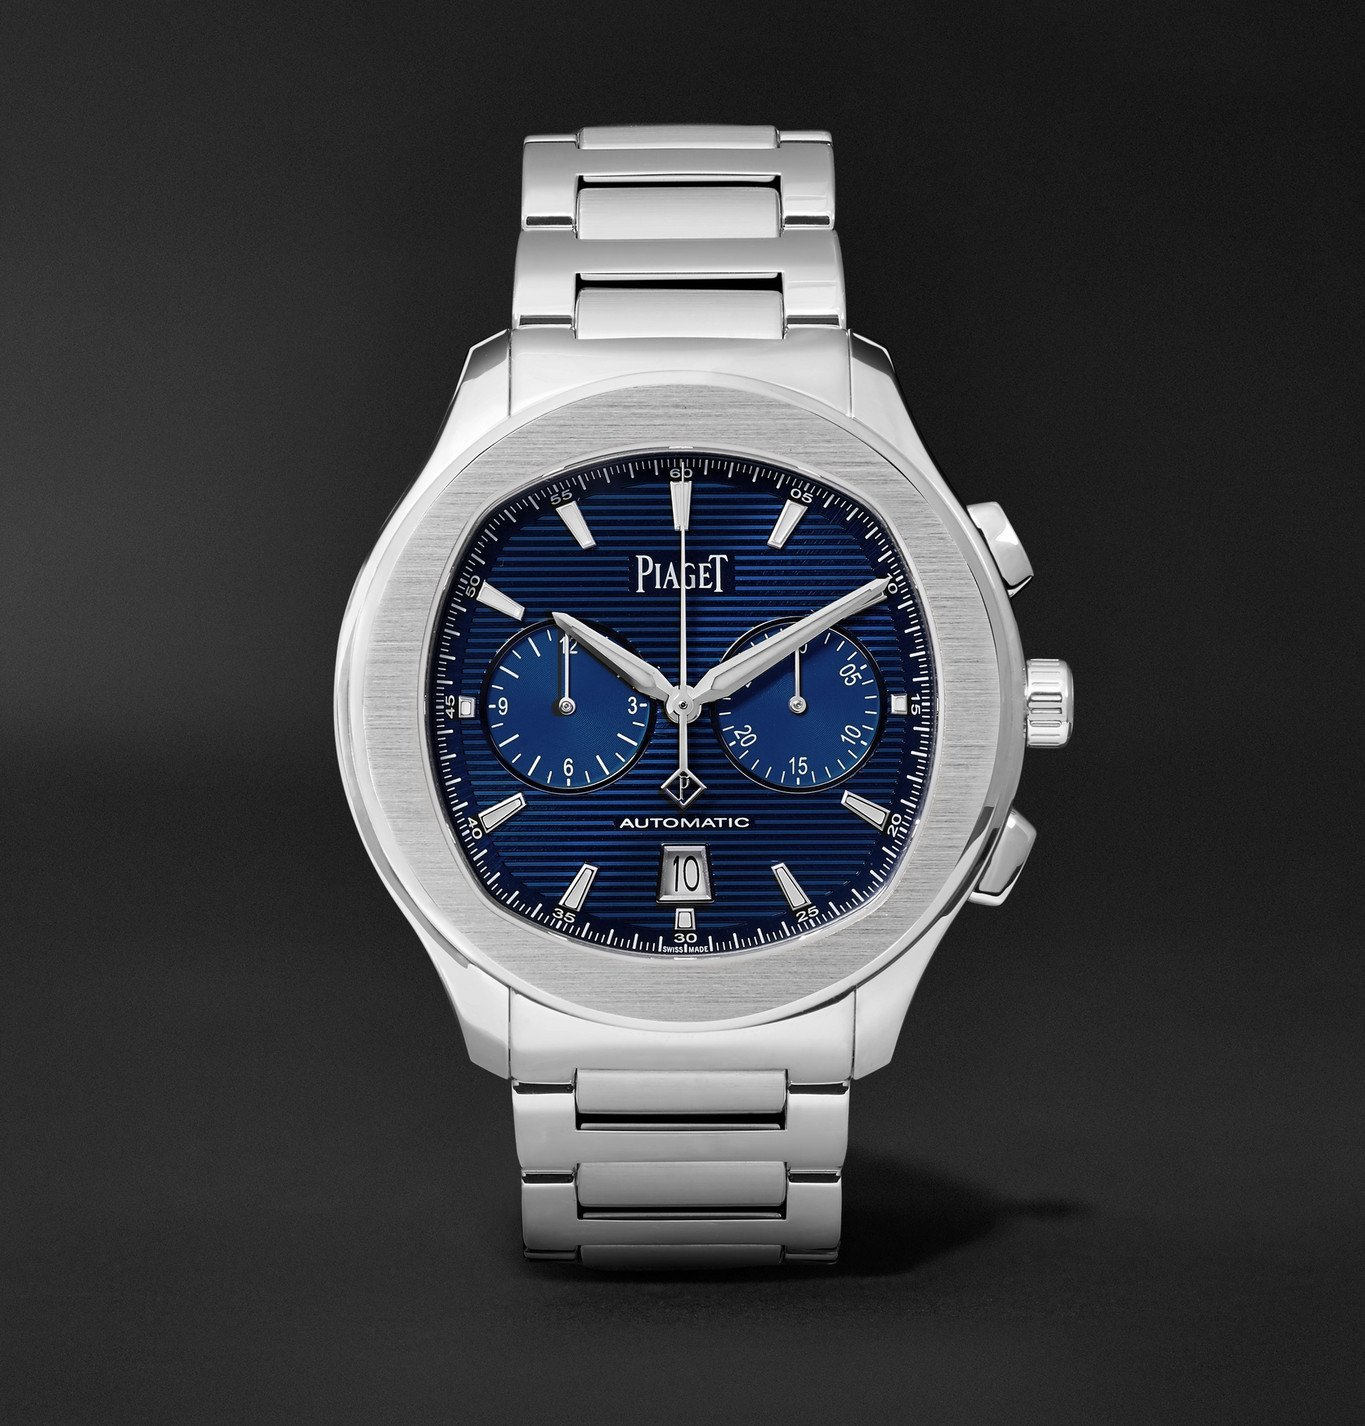 Photo: Piaget - Polo S Automatic Chronograph 42mm Stainless Steel Watch, Ref. No. G0A41006 - Blue